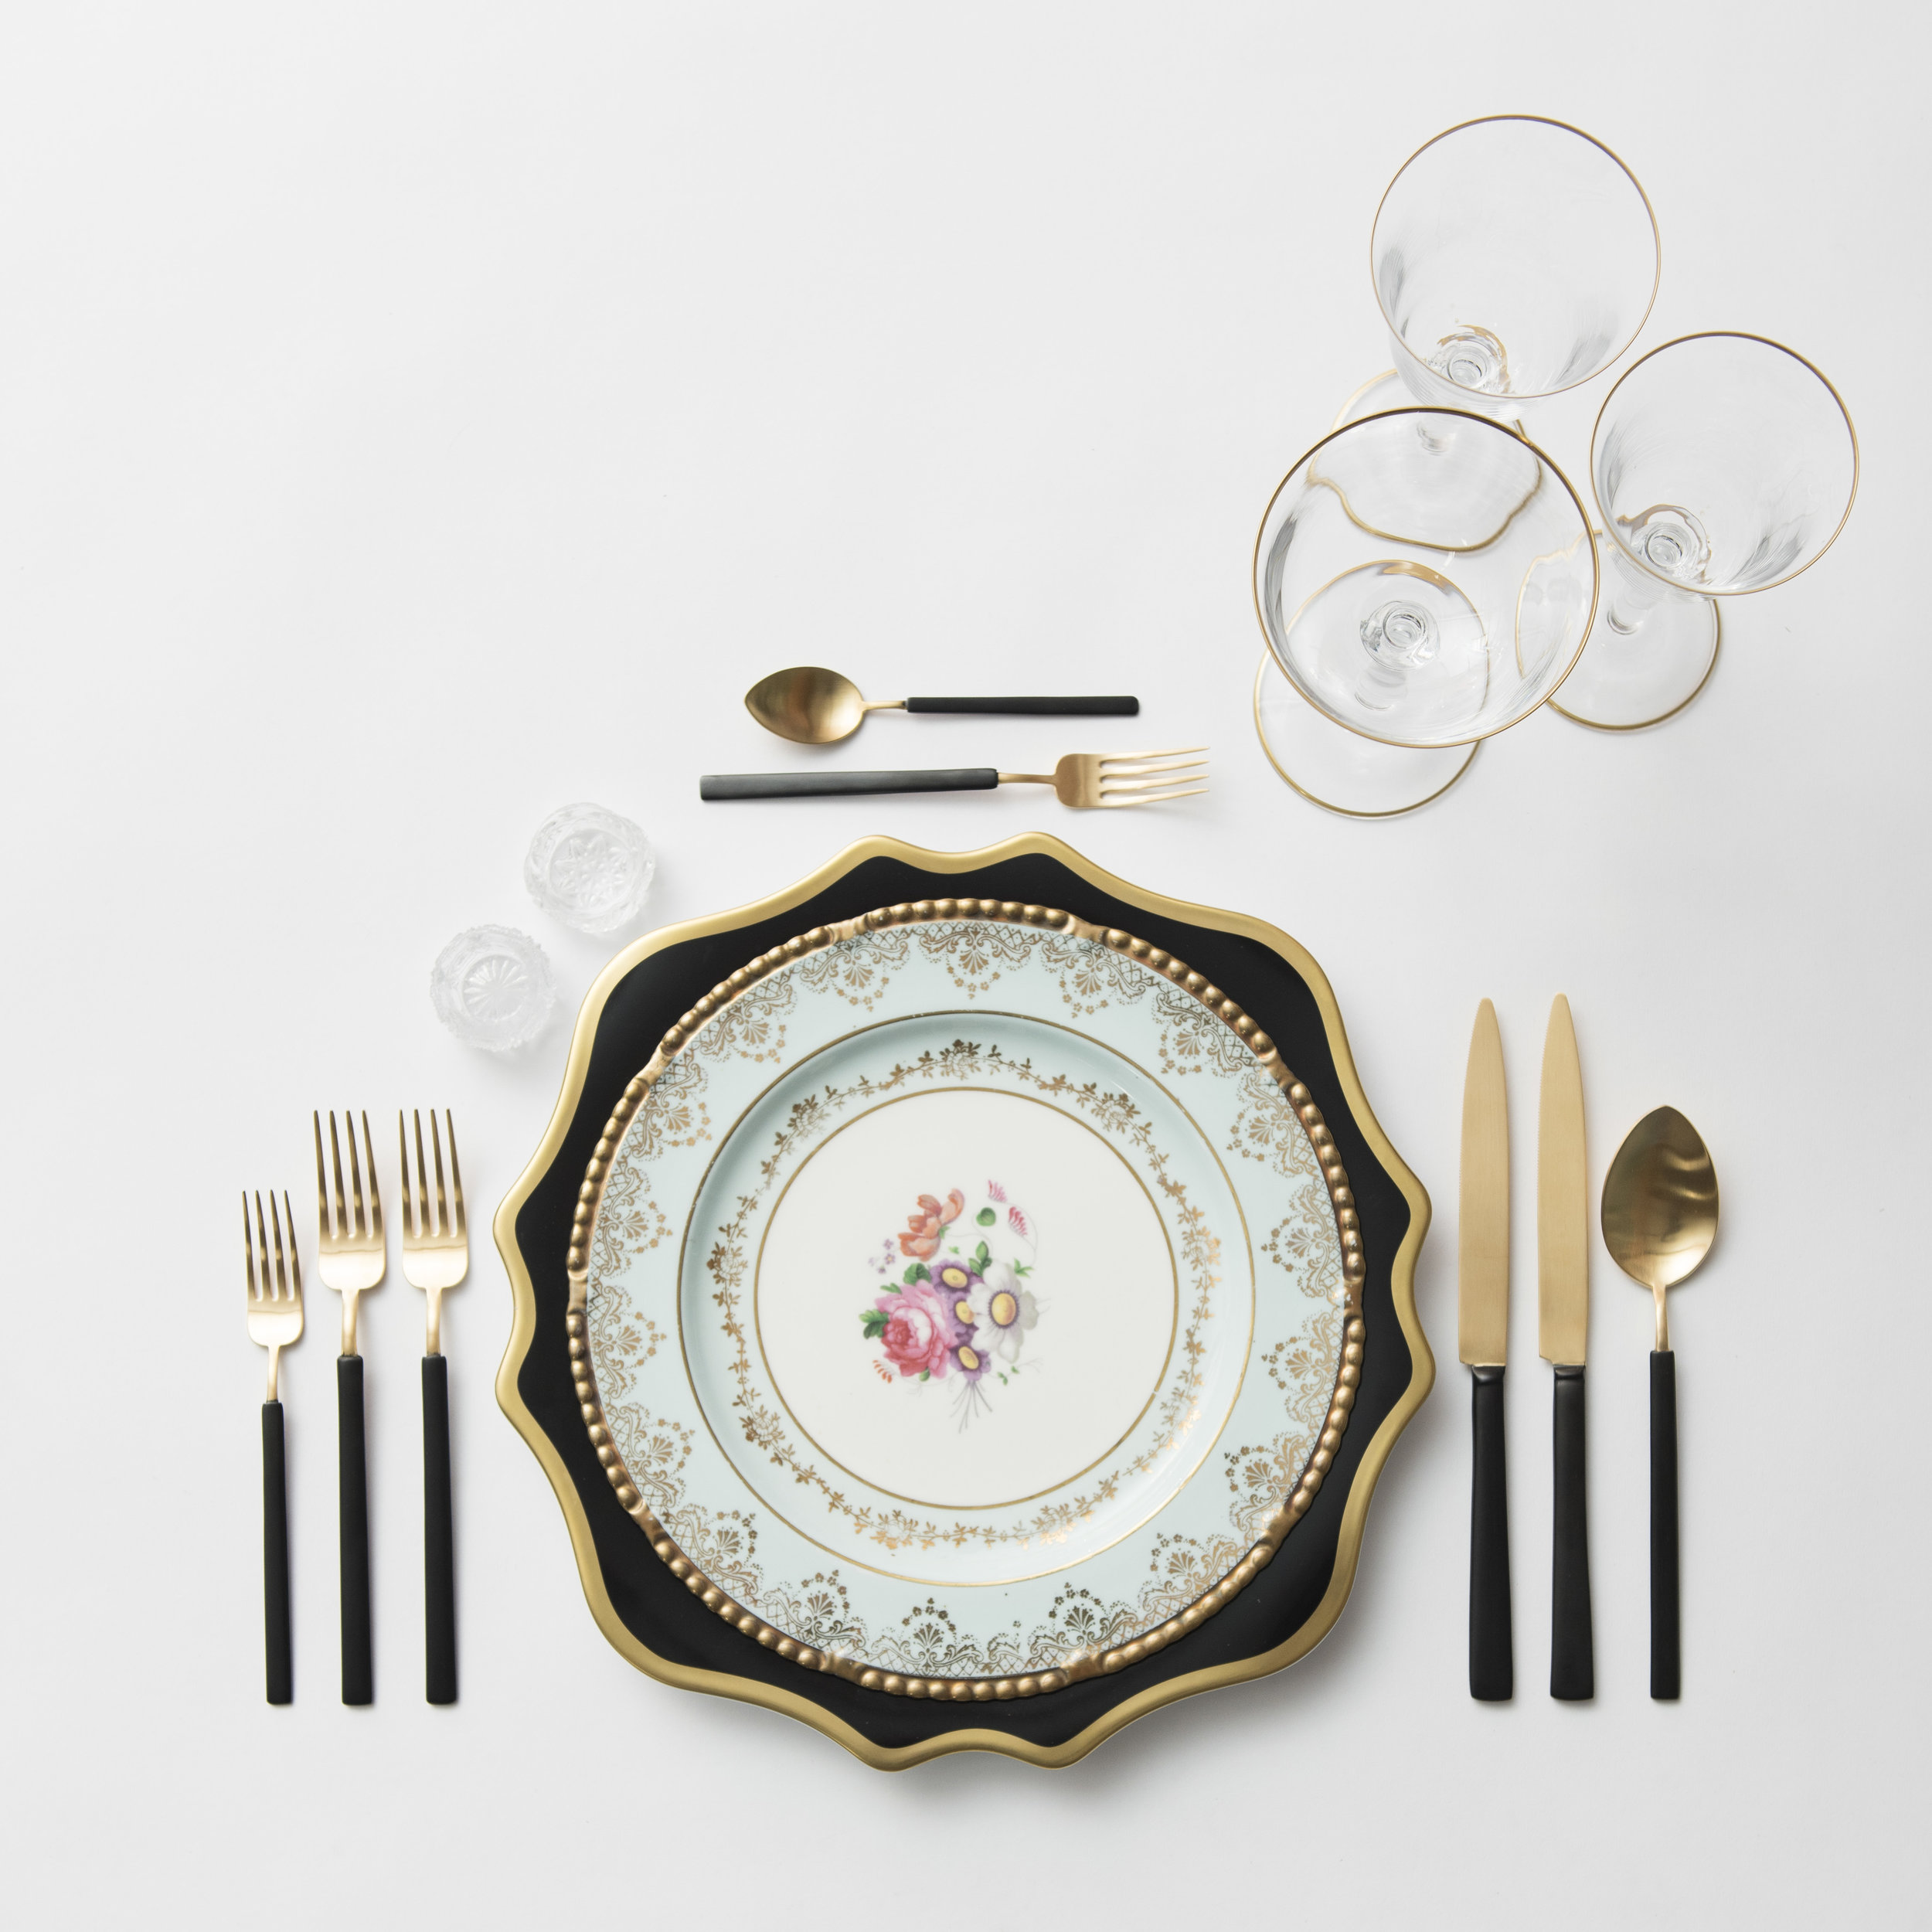 RENT: Anna Weatherley Chargers in Black/Gold + Blue Botanicals Vintage China + Axel Flatware in Matte 24k Gold/Black + Chloe 24k Gold Rimmed Stemware + Antique Crystal Salt Cellars  SHOP: Chloe 24k Gold Rimmed Stemware